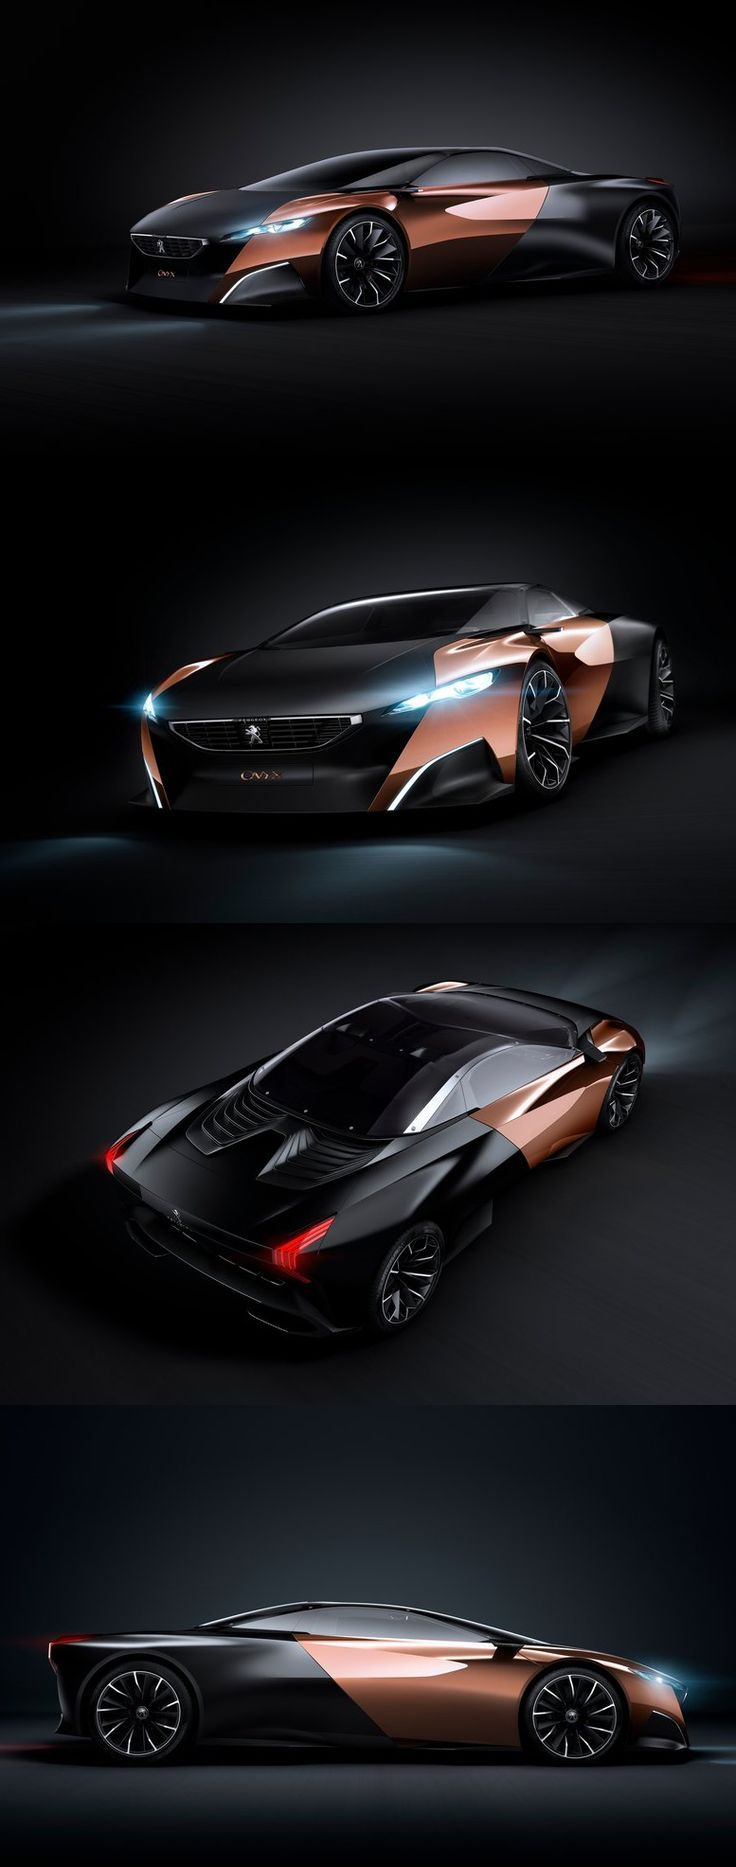 Image via  Lada Raven Concept Car   Image via  Dolphin concept car is the third winner of Michelin design challenge 2013, it reflects the principle of sporty, scientific and futuristic. Cars